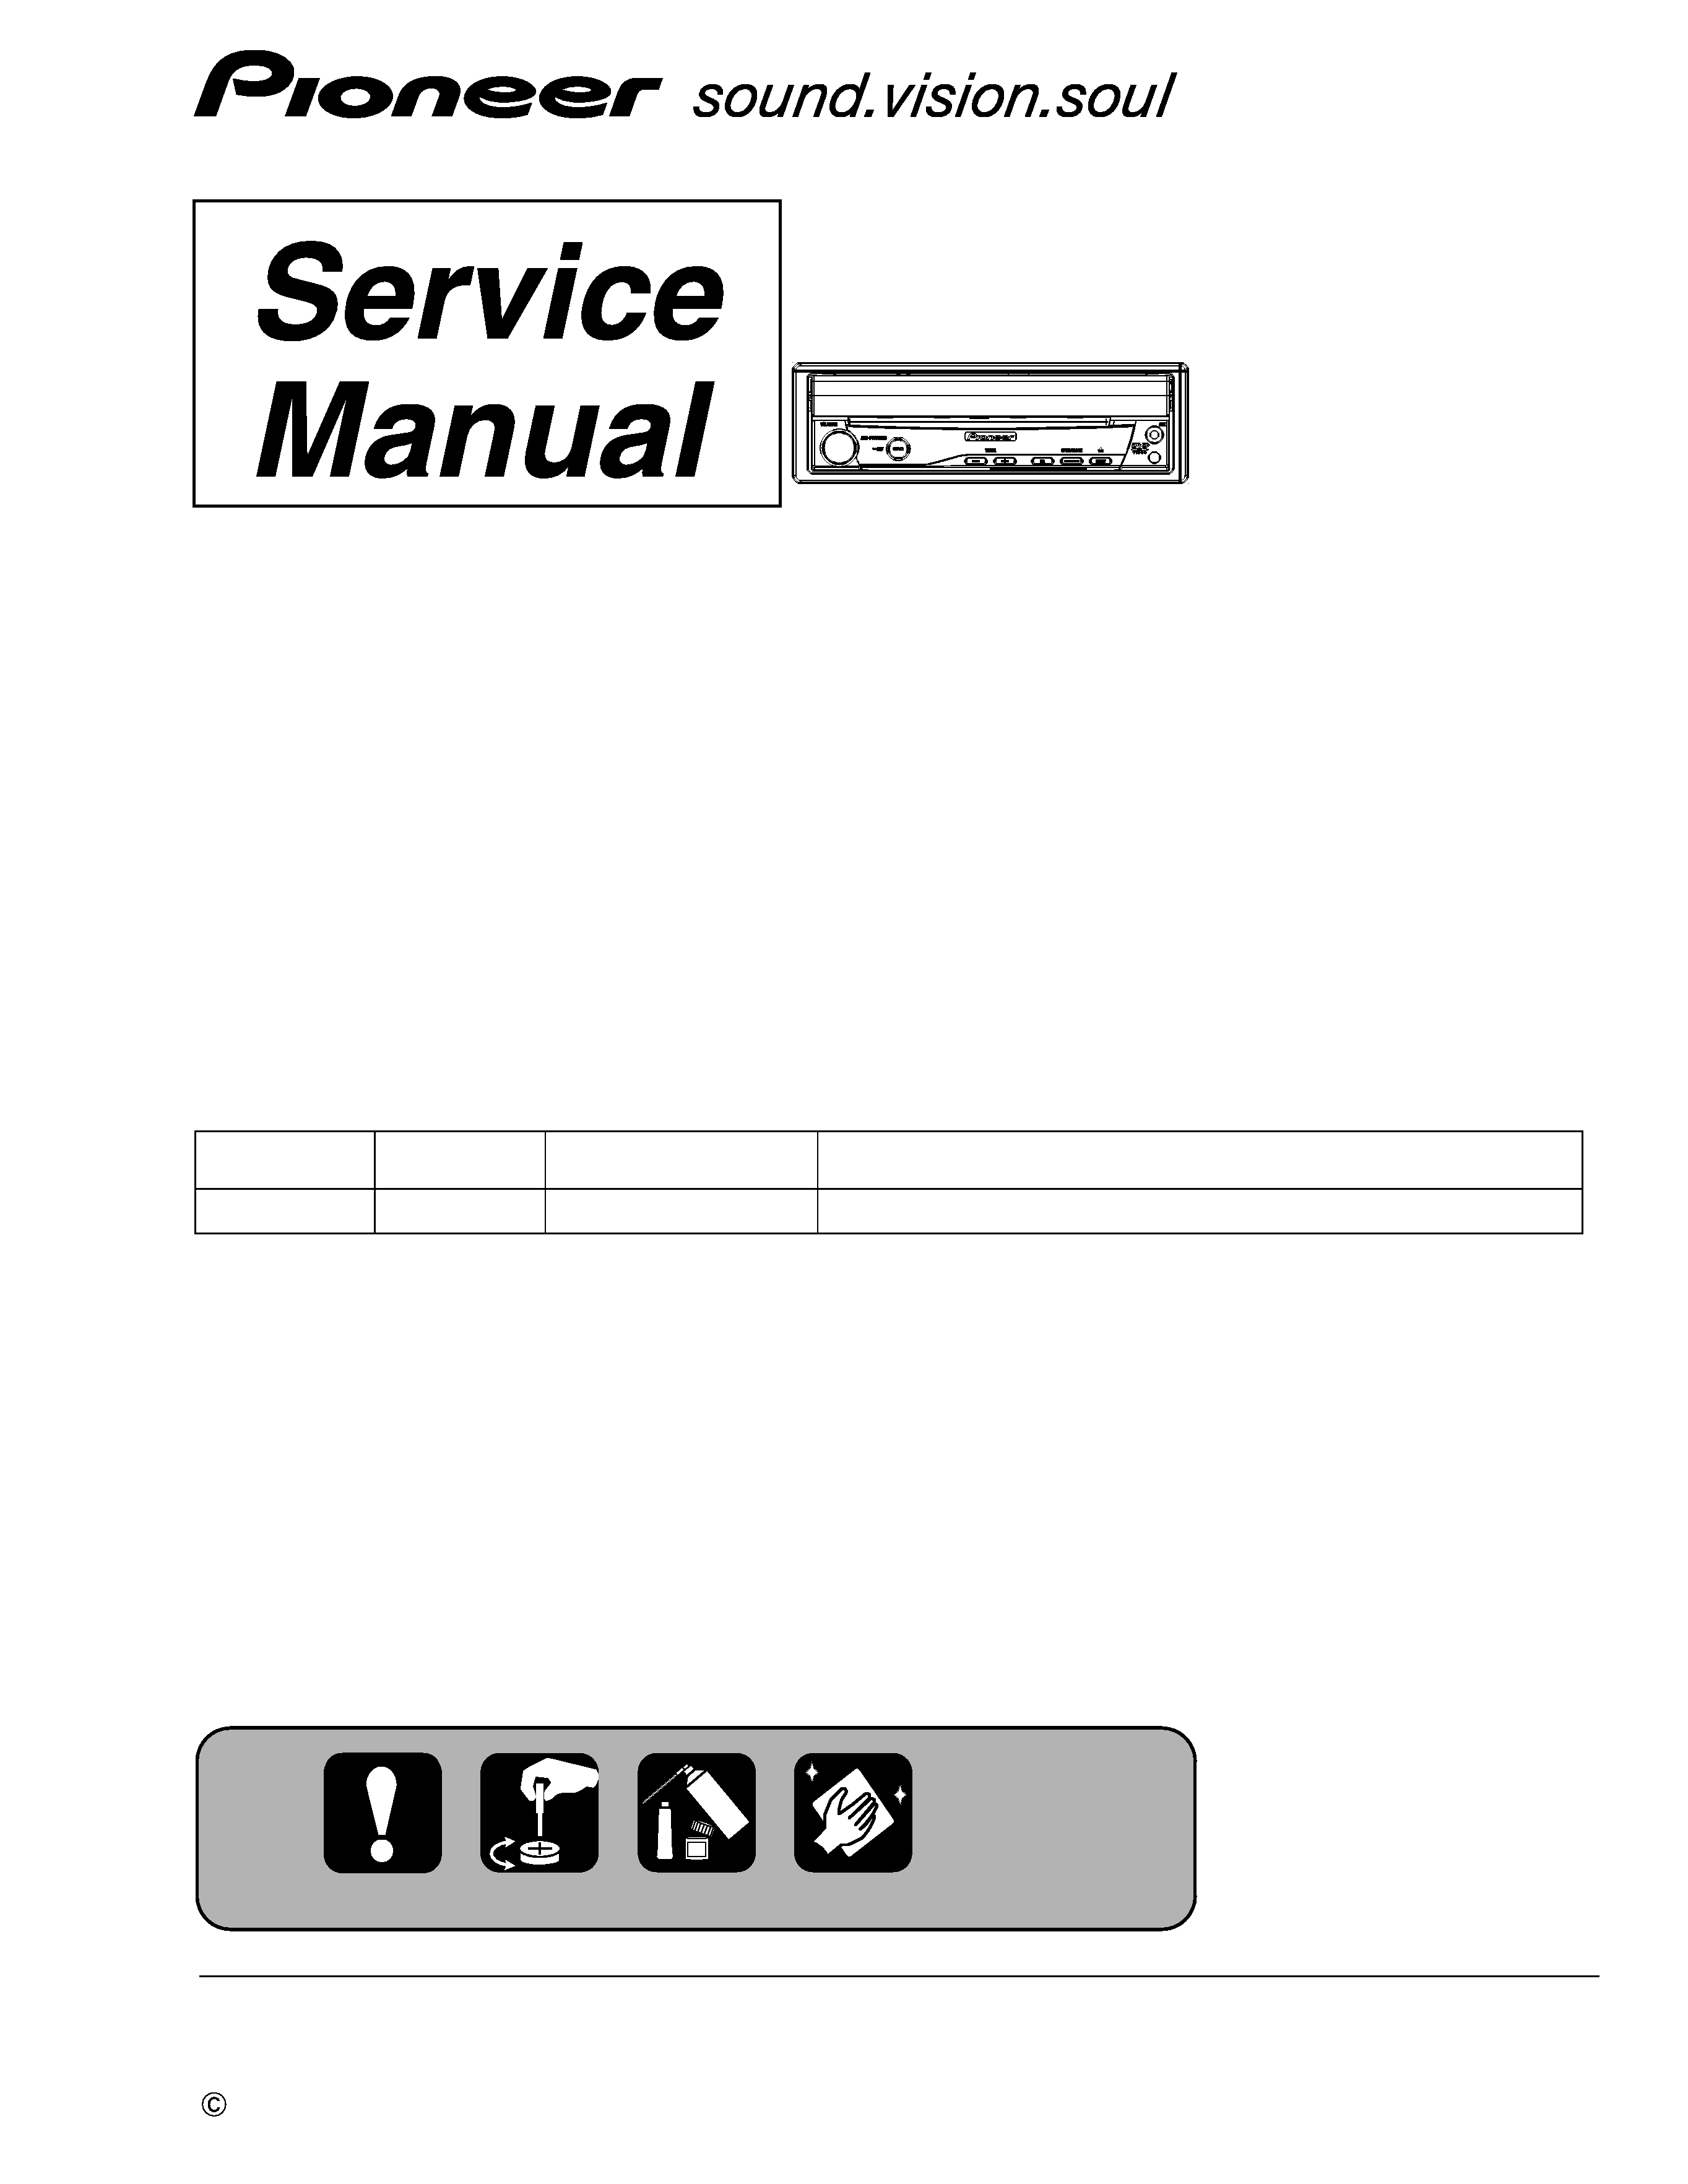 Pioneer Avh P5000dvd Xnew5 Service Manual Immediate Download Wiring Diagram Background Image